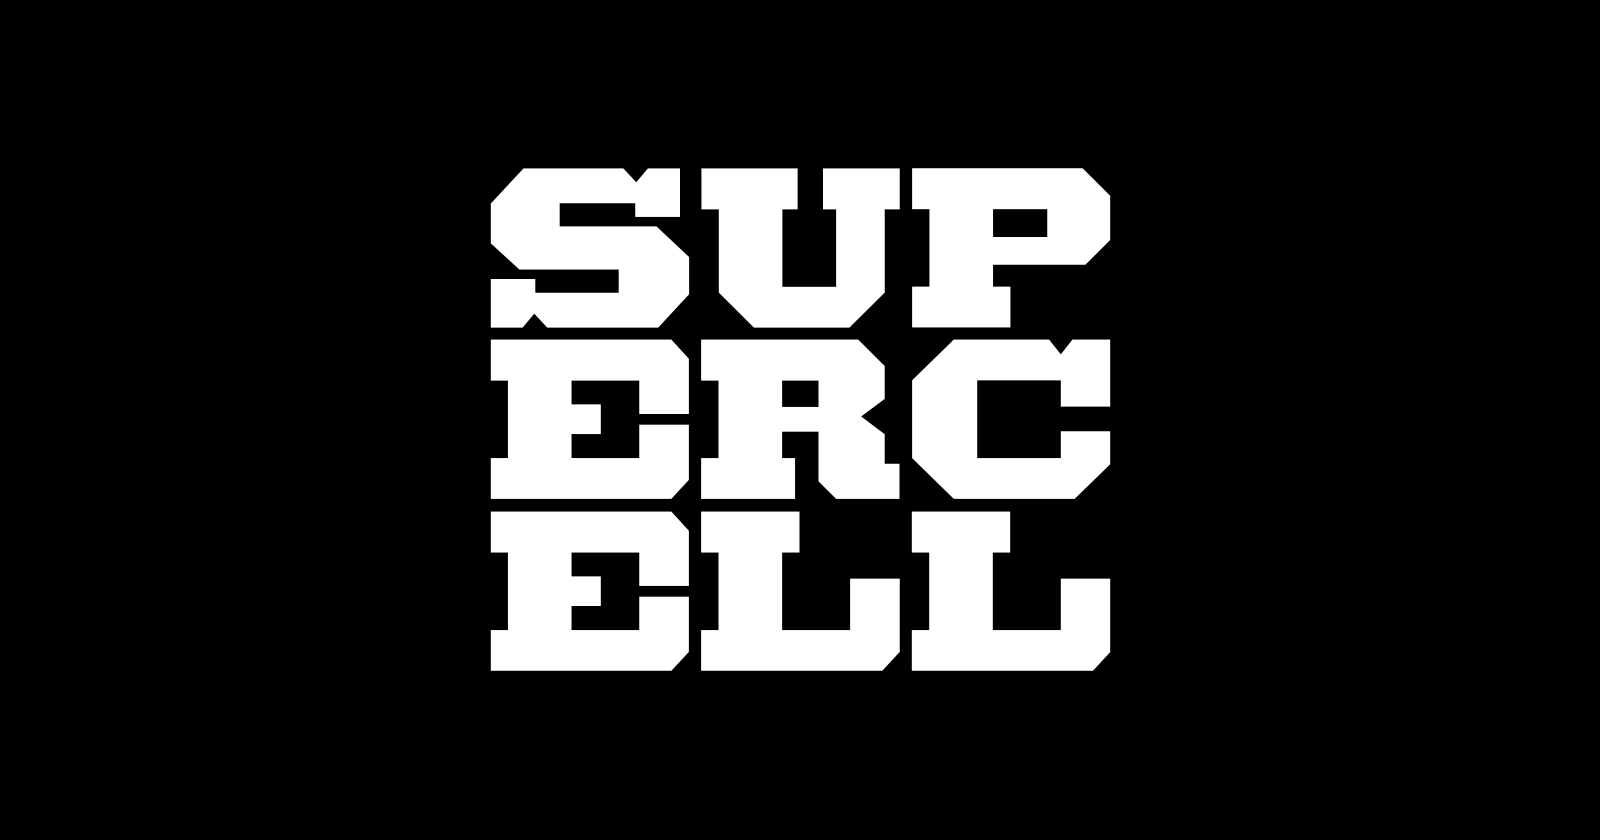 Supercell Backgrounds, Compatible - PC, Mobile, Gadgets| 1600x840 px